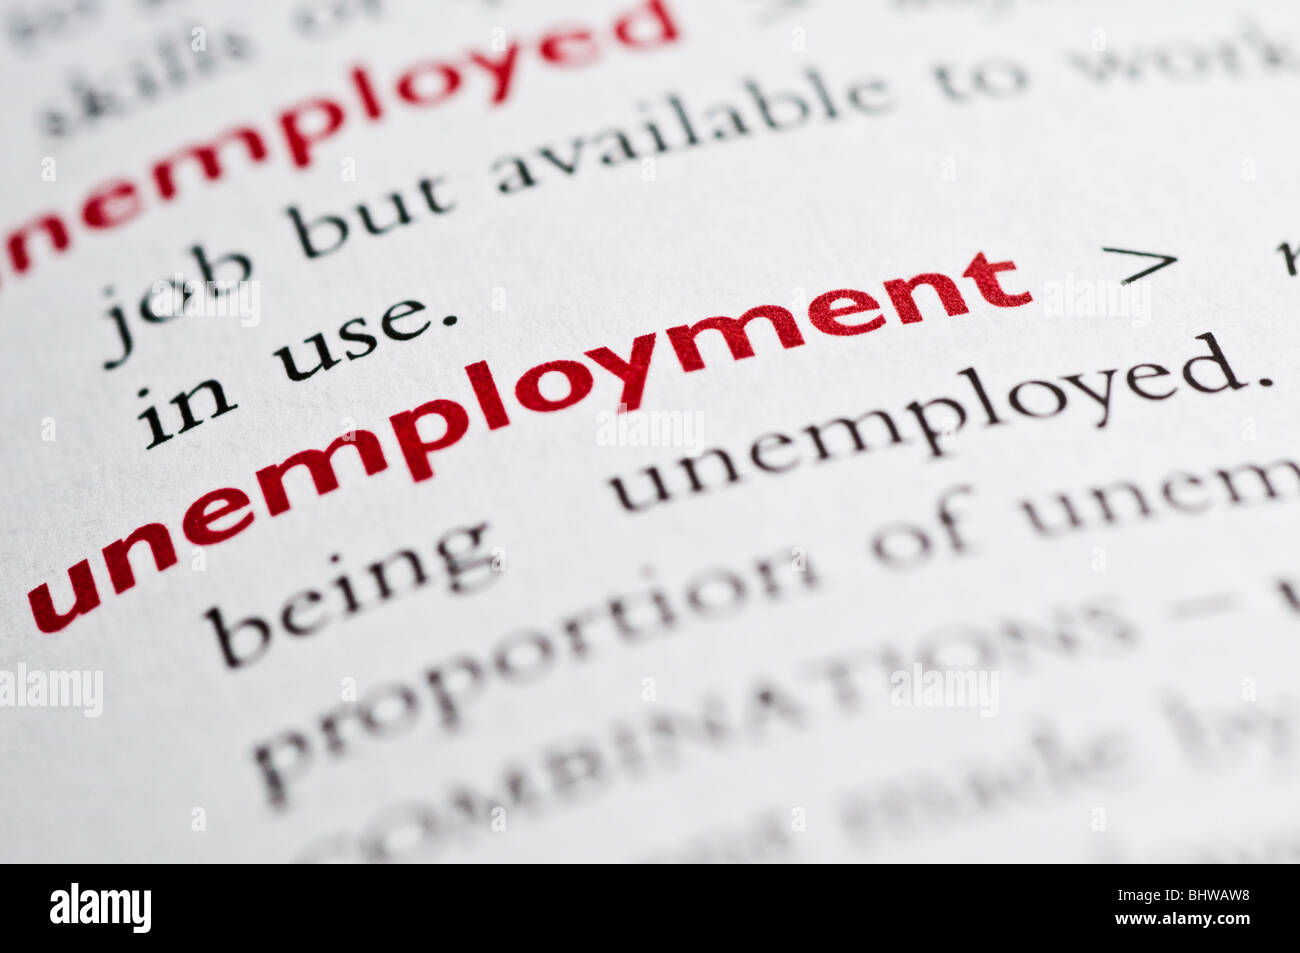 Dictionary definition of unemployment - Stock Image